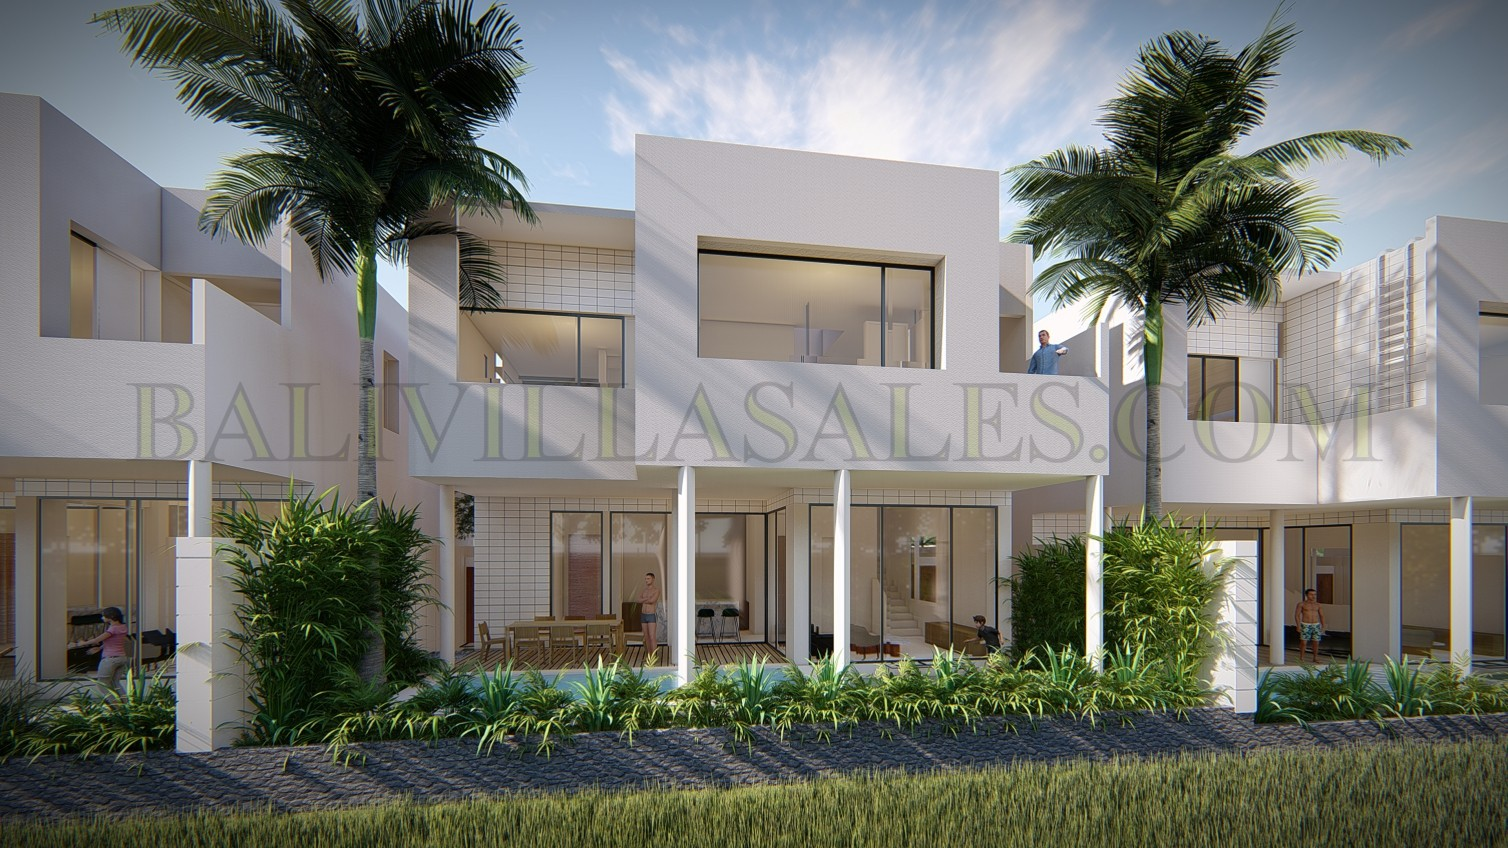 3 Bedrooms Luxury Townhouse with a striking modern design, Completed September 2021